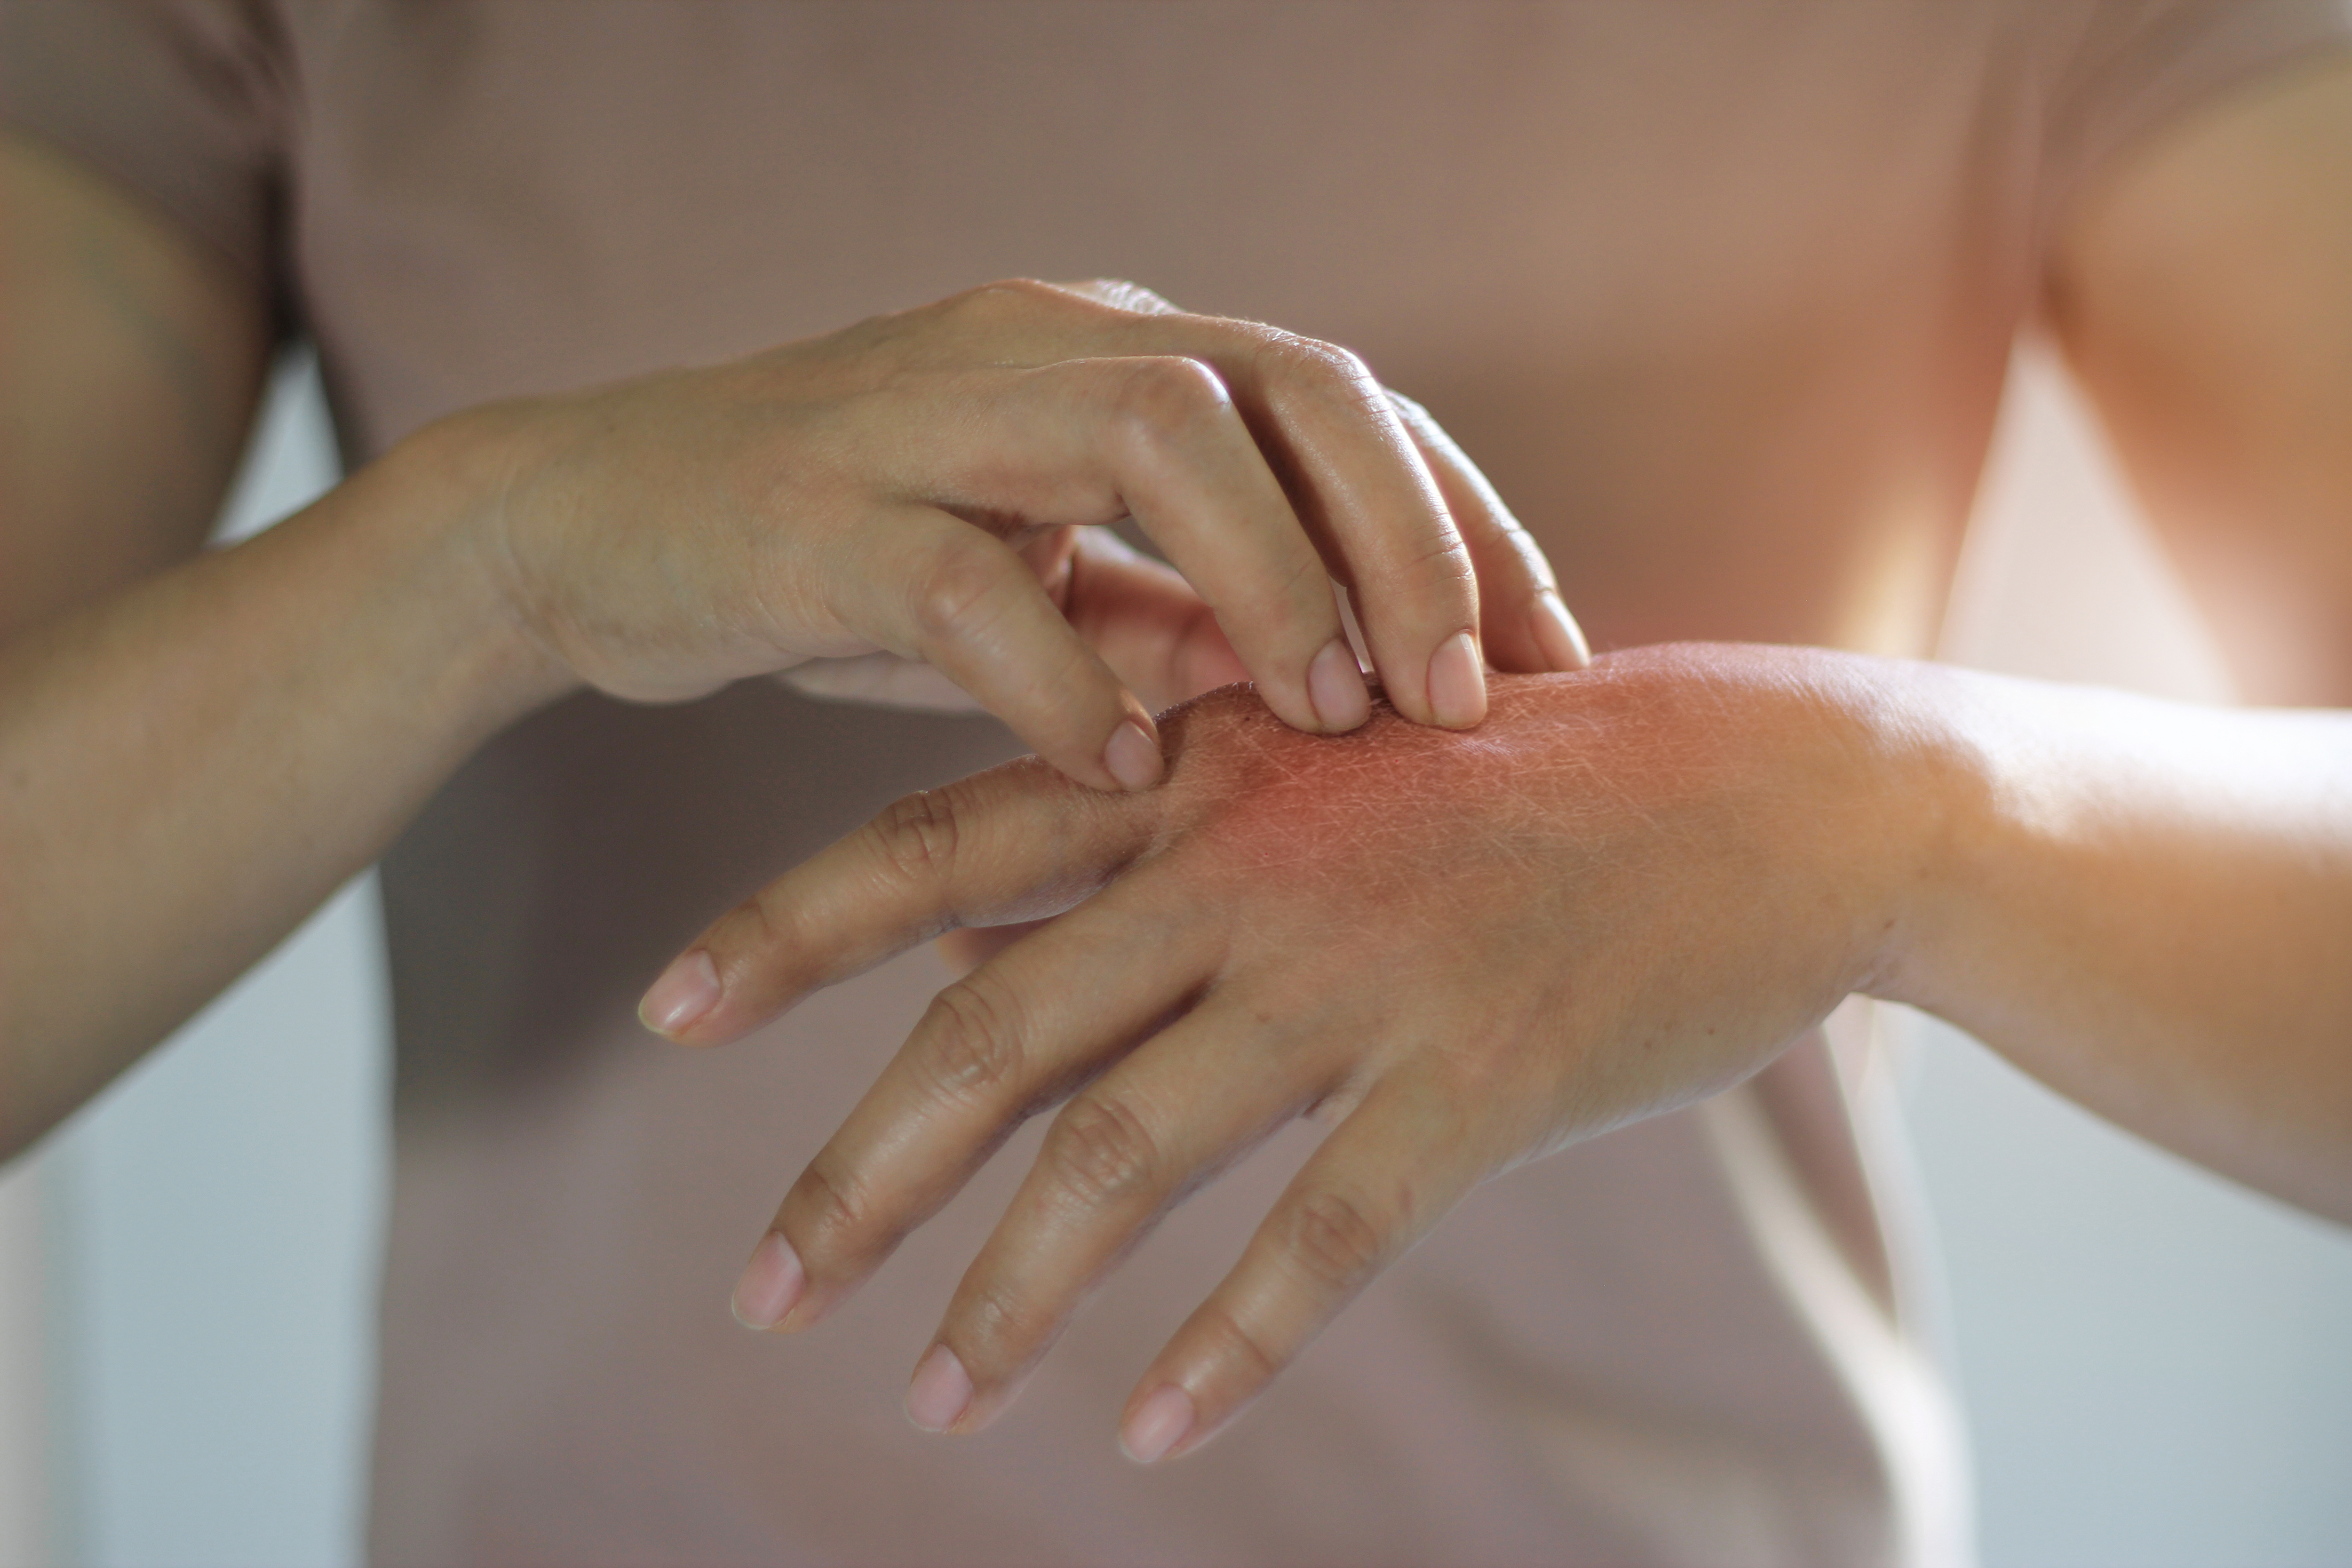 What's the best treatment for eczema?